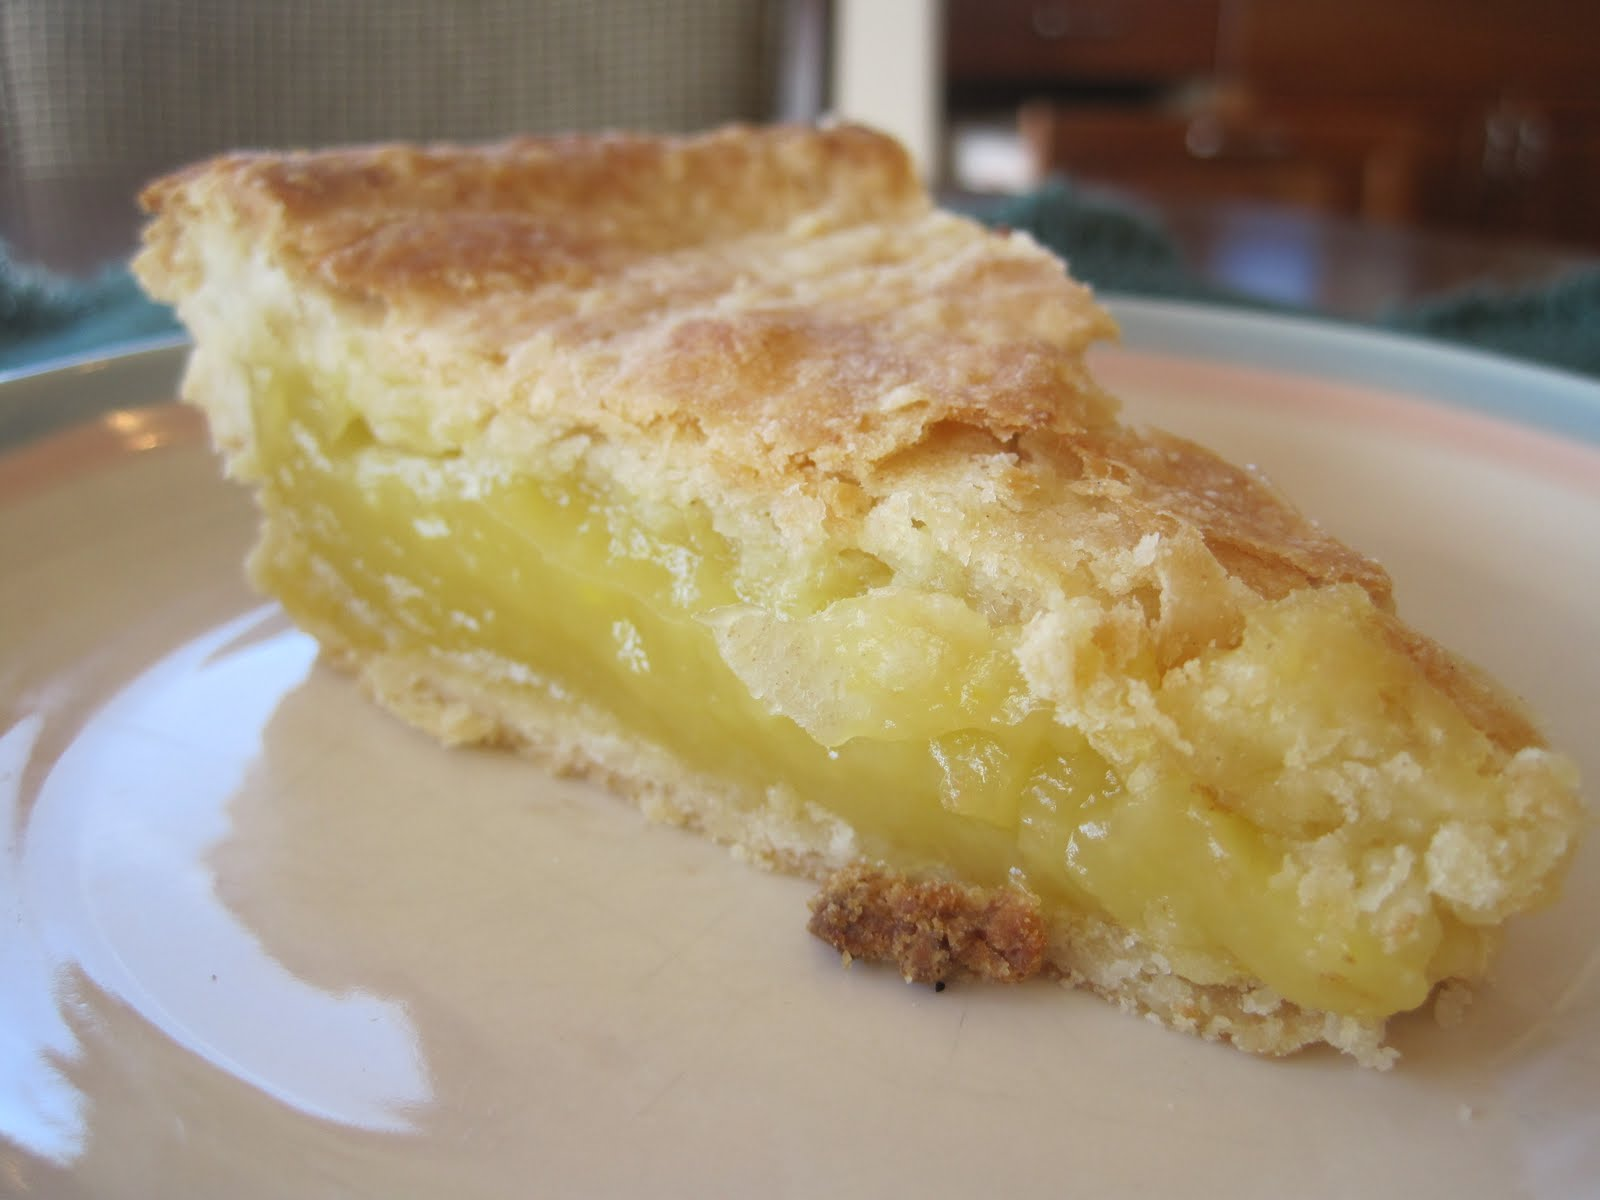 Over a year ago, my father suggested I make a double-crust lemon pie ...